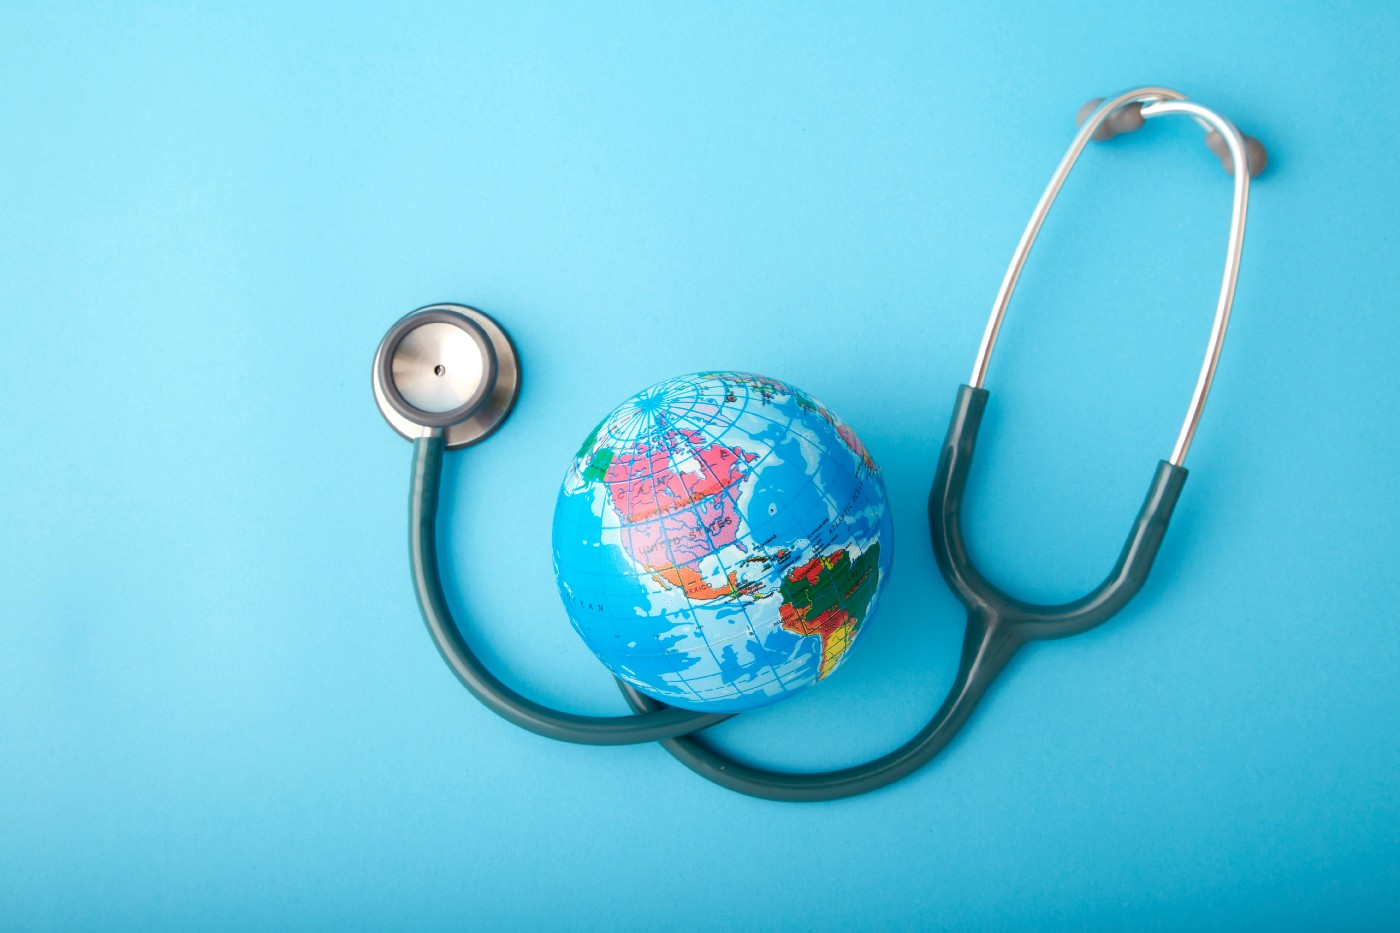 A close up of a stethoscope next to a small globe on a blue background.